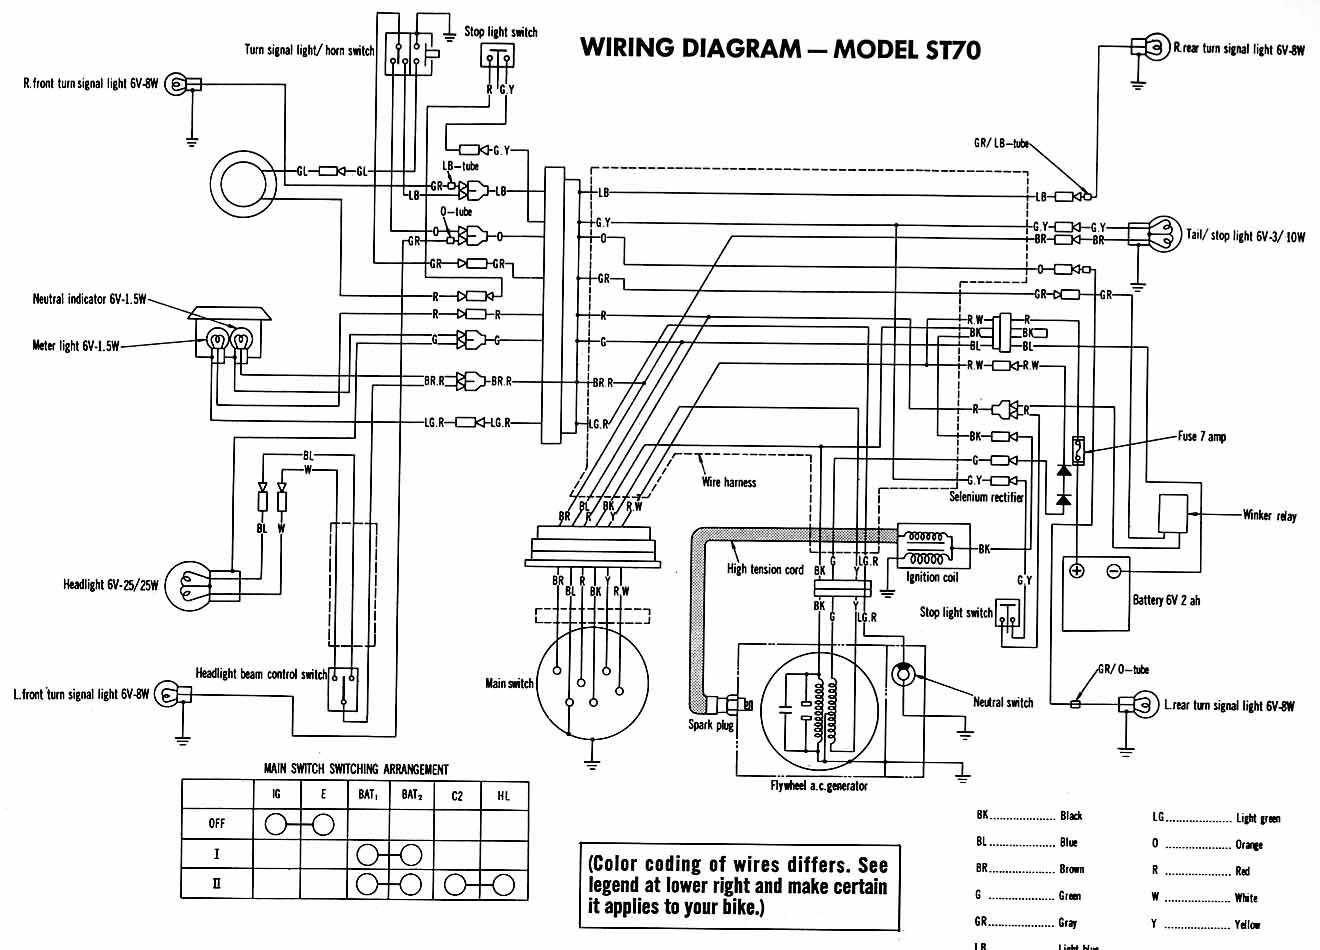 Wiring Diagram Of Honda Sl 100 Motorcycle Diagrams Chopper Xl600r Get Free Image About Elite